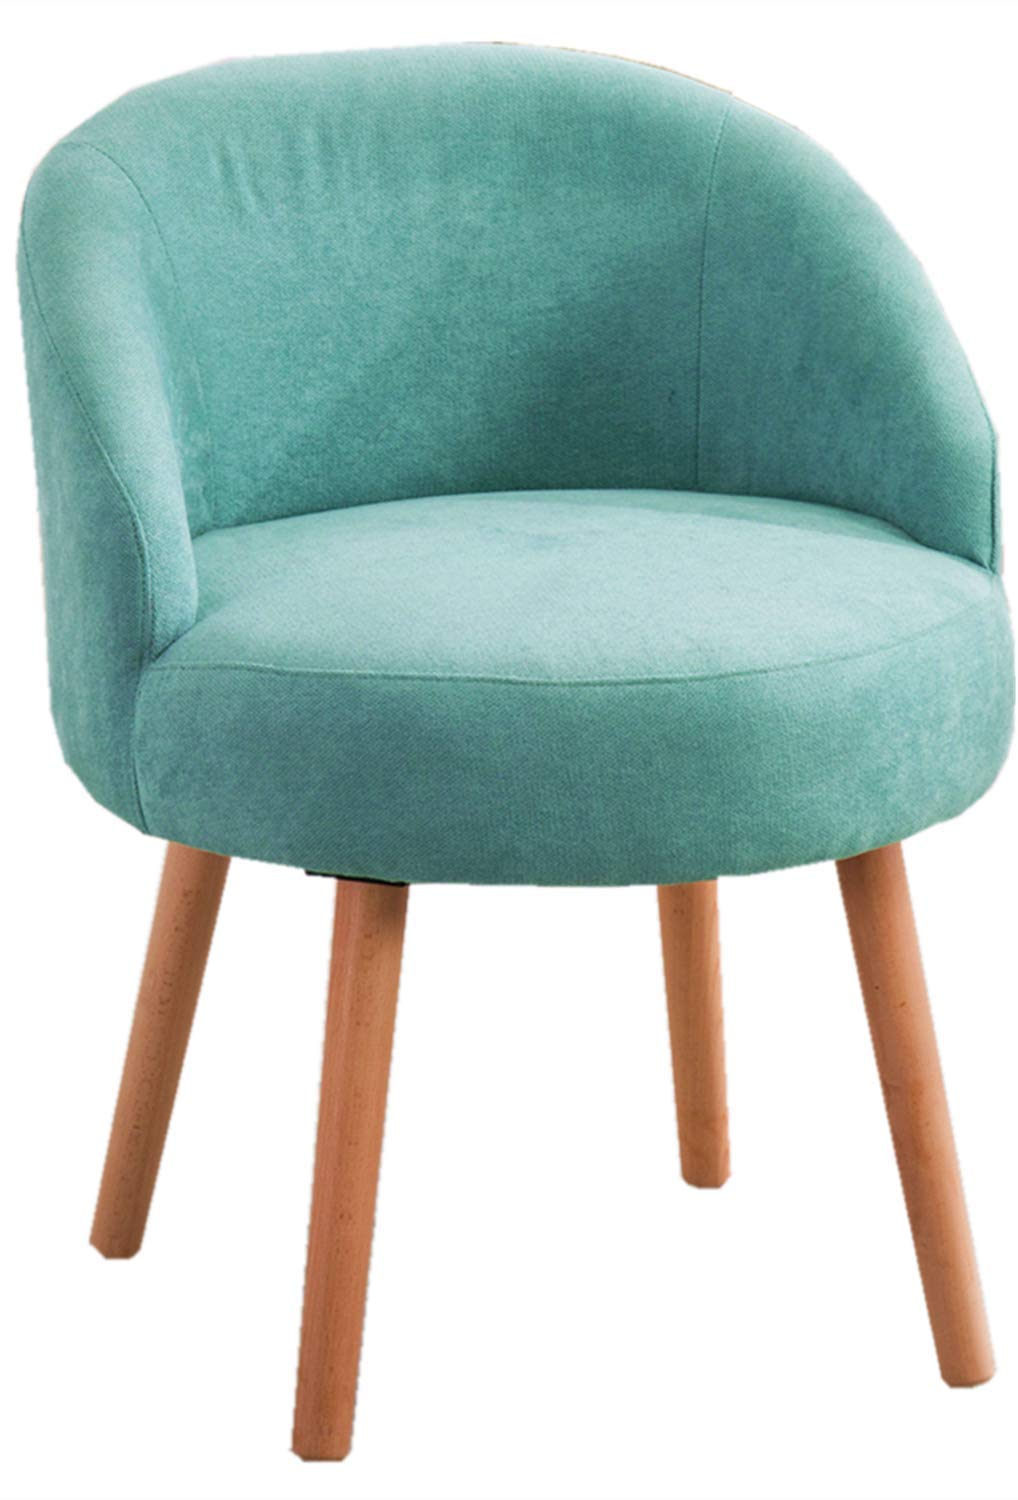 Modern Candy Blue Leisure Arm Chairs Single Couch Seat Home Garden Living Dining Room Furniture Sofa with Solid Wood Legs by DUSTIN'S